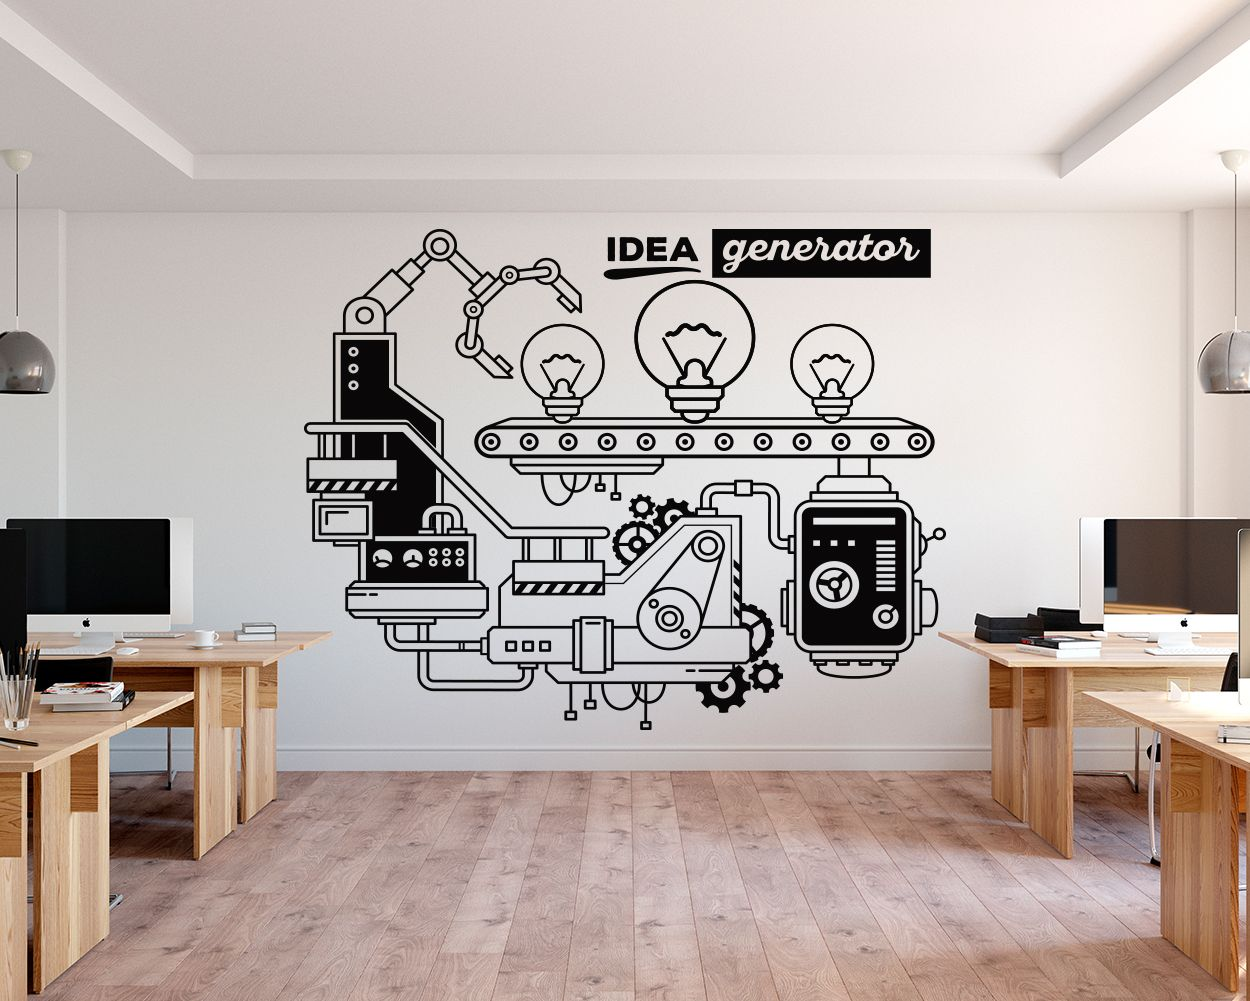 Idea Generator Office Wall Decor